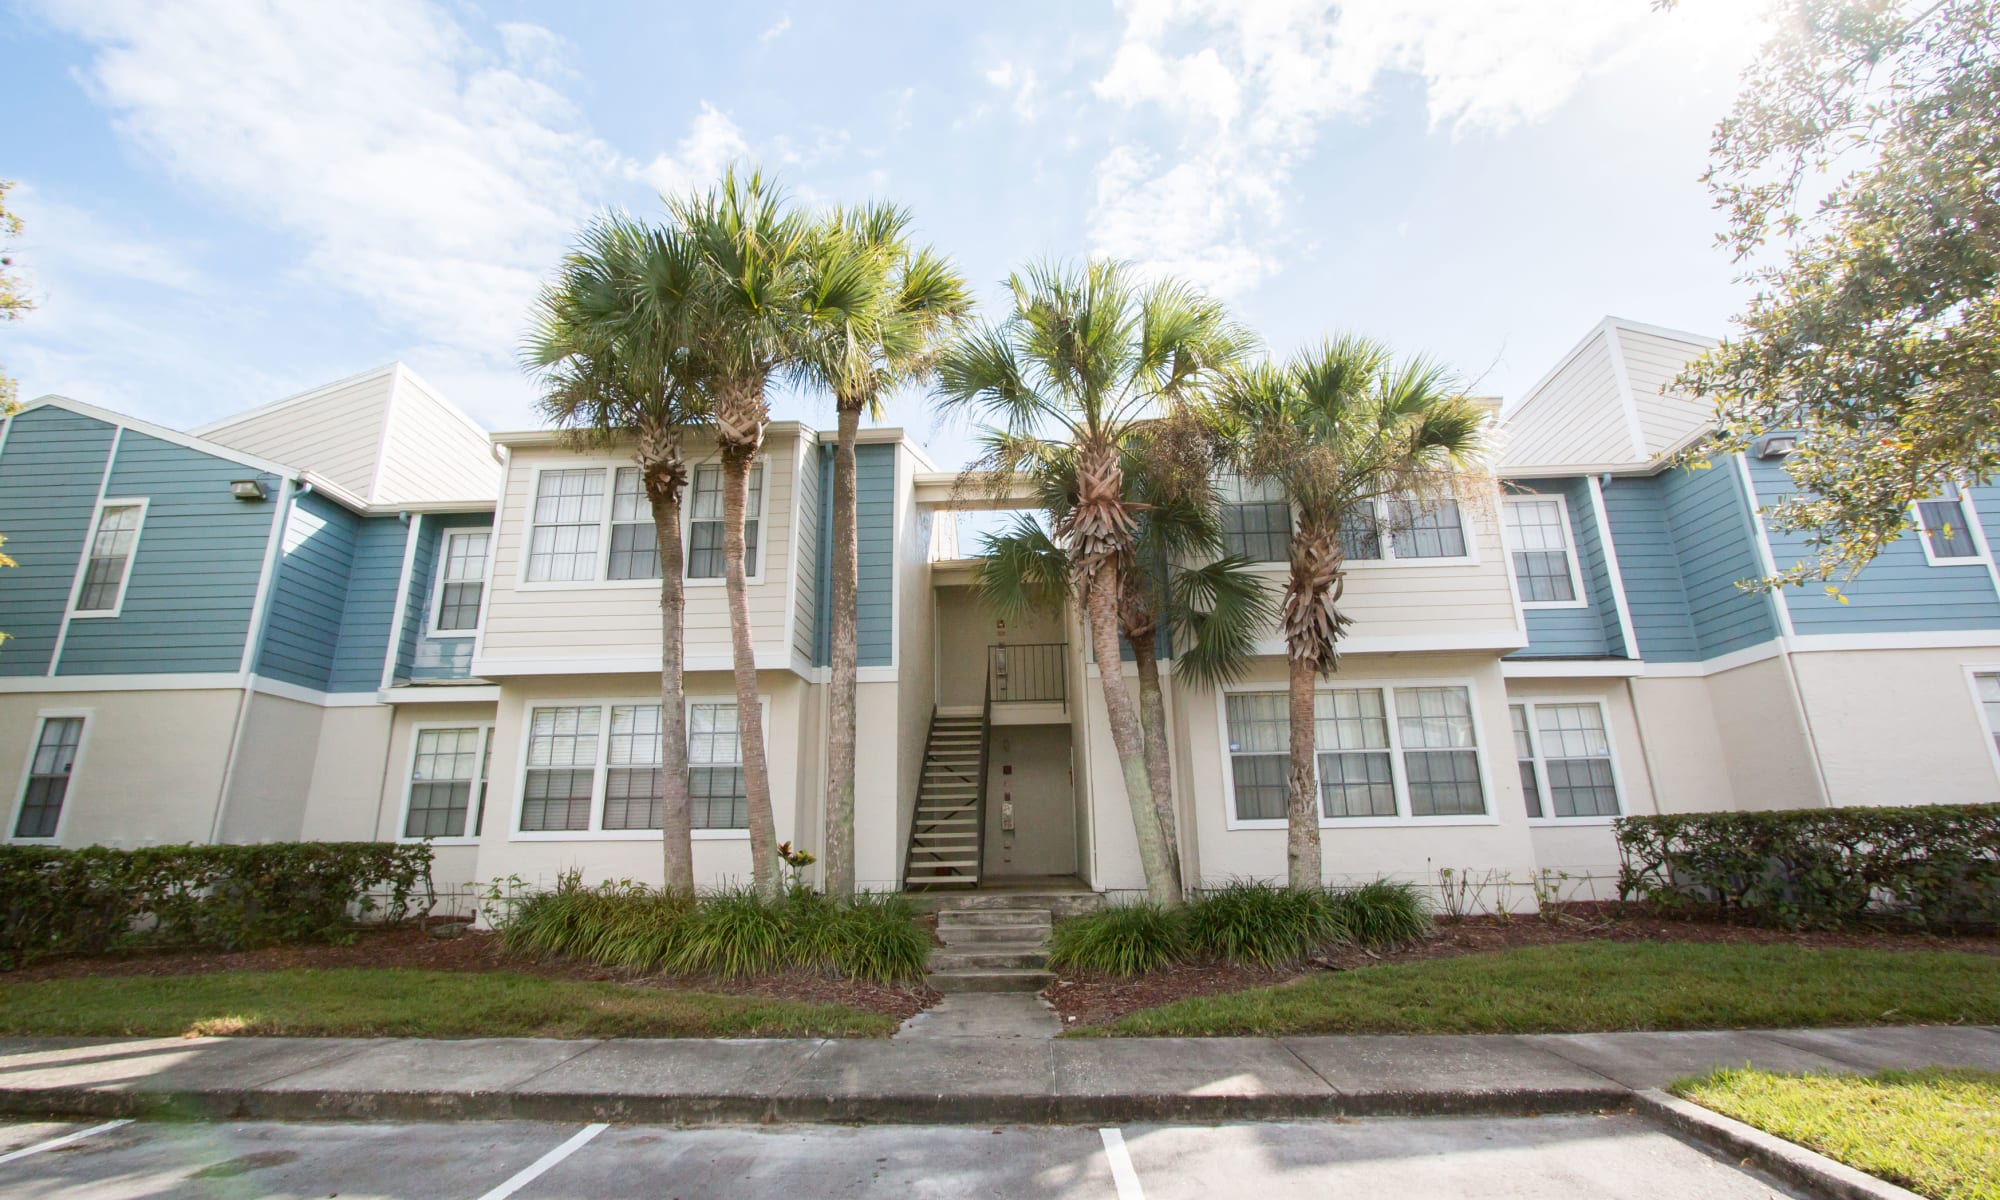 Apartments at Fairways at Feather Sound in Clearwater, Florida